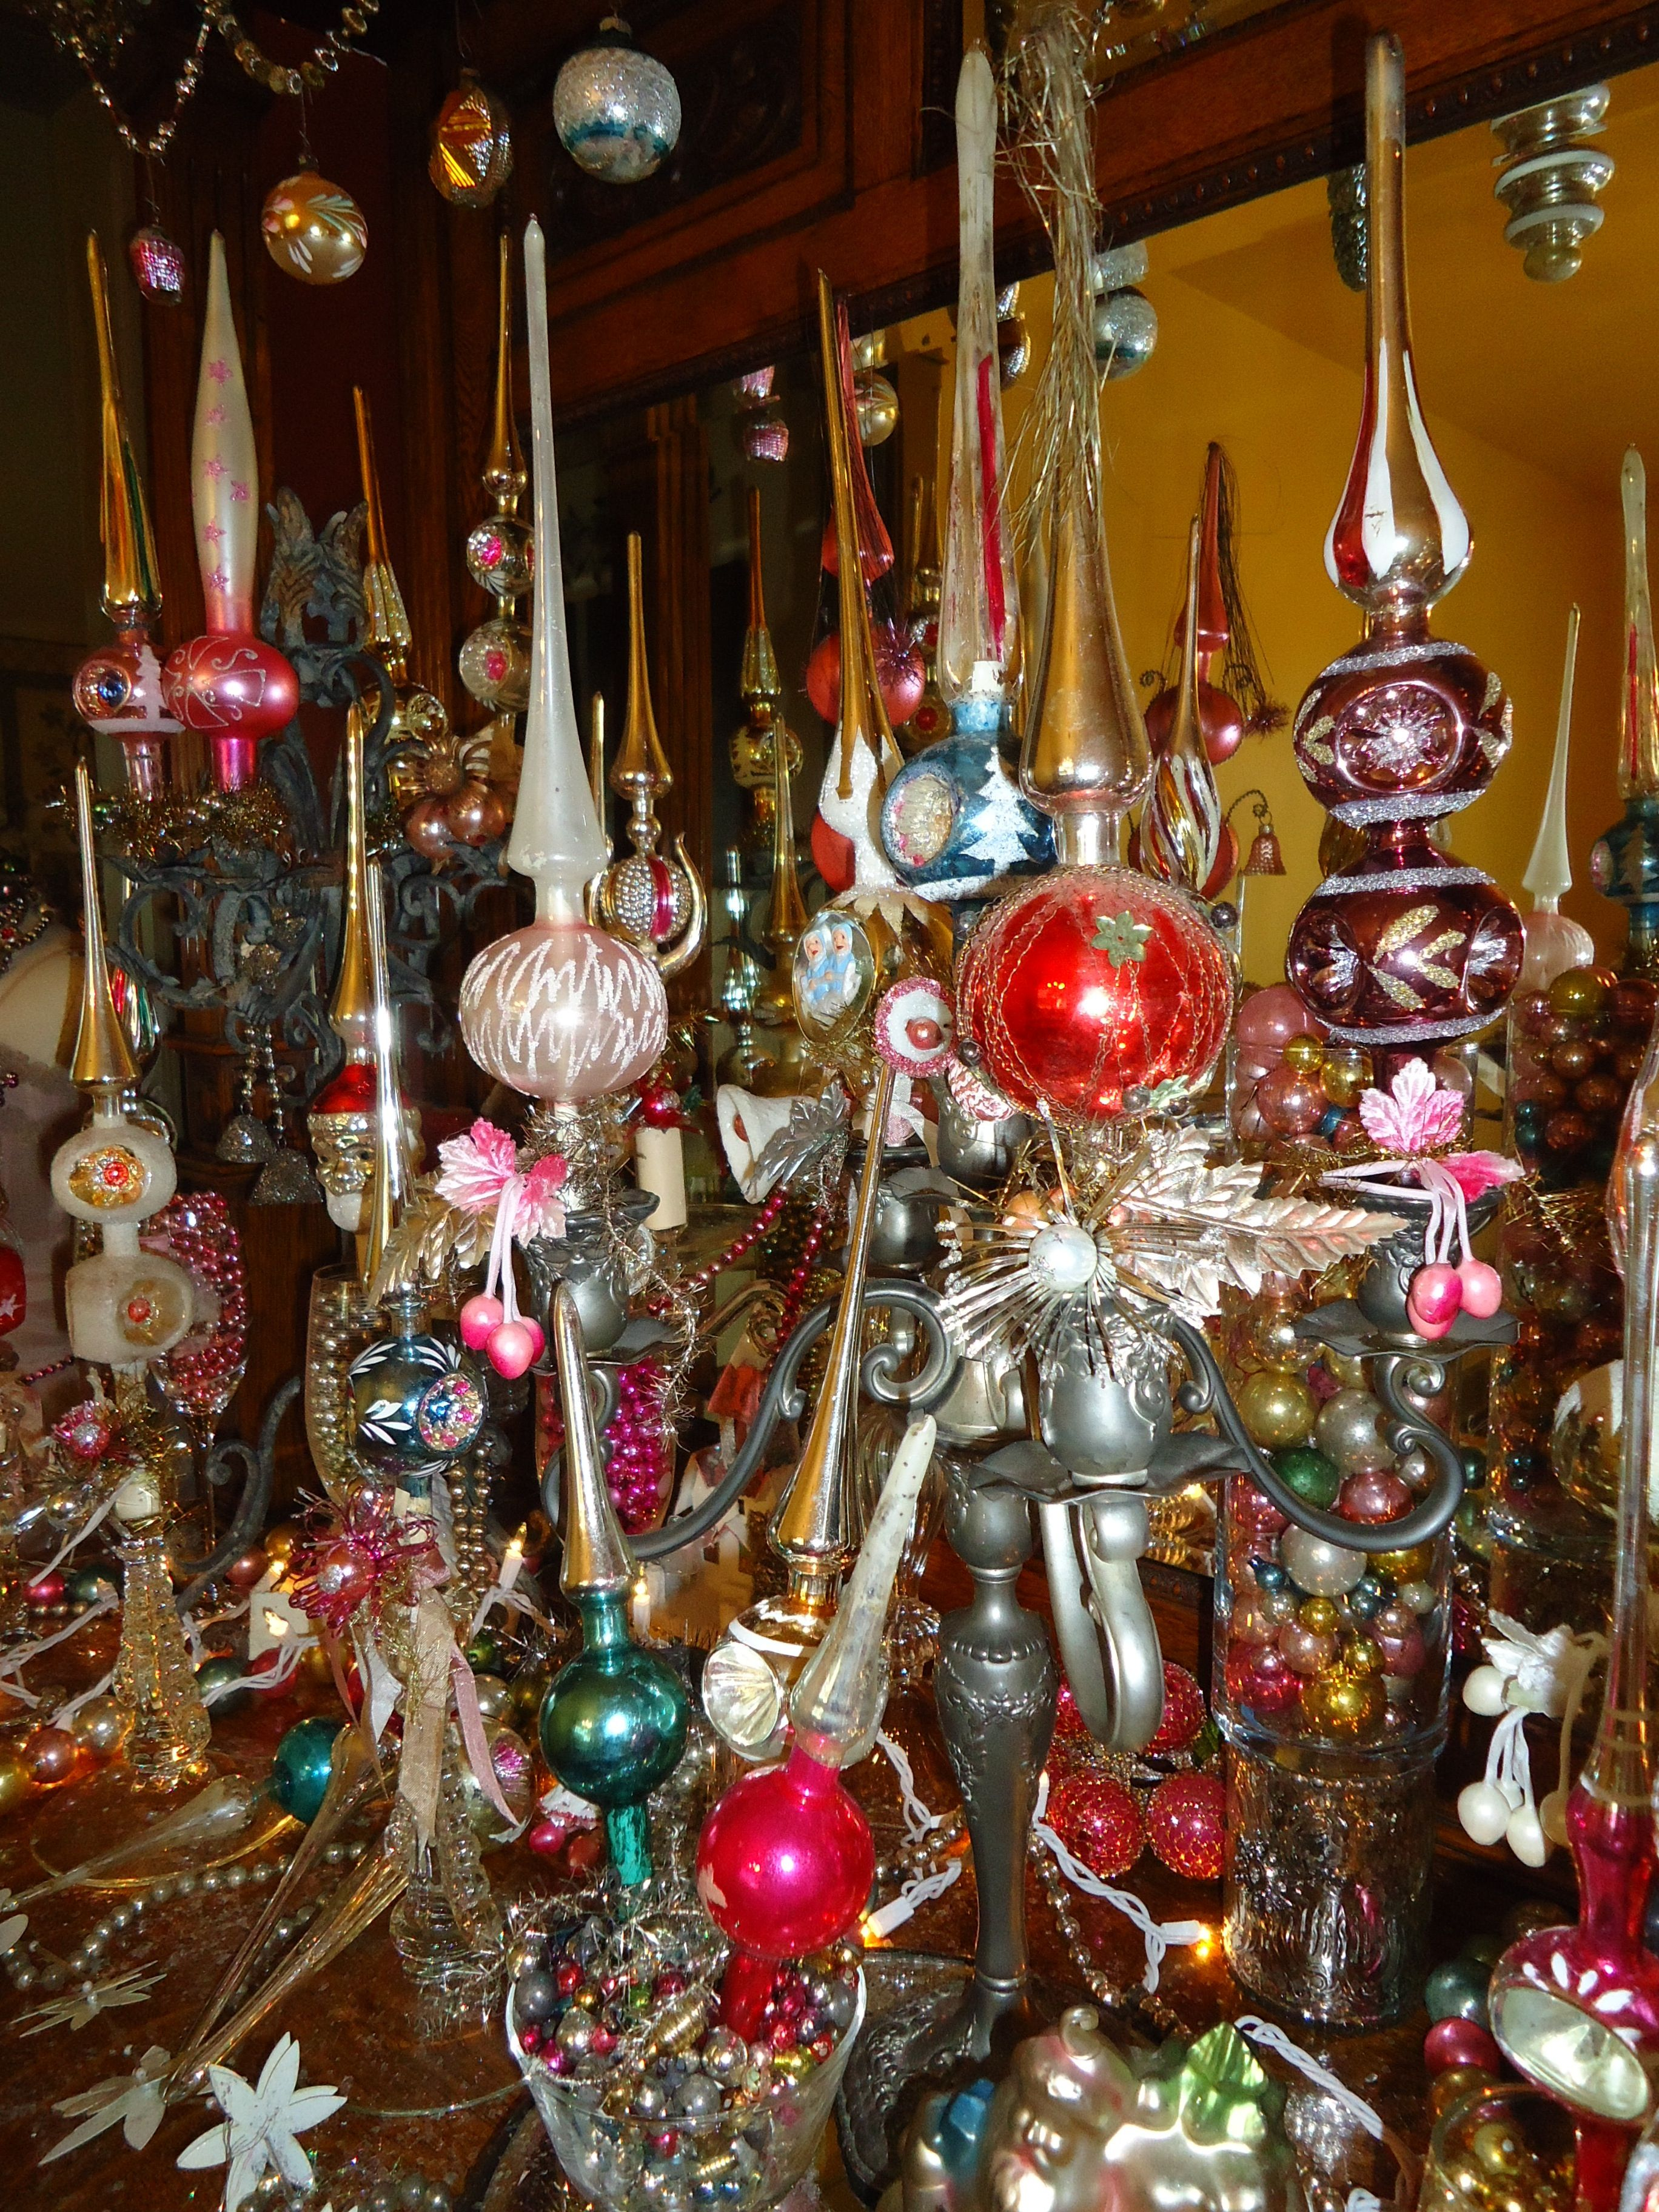 Lovely Old Mercury Glass Tree Topper Display, 2014 Christmas